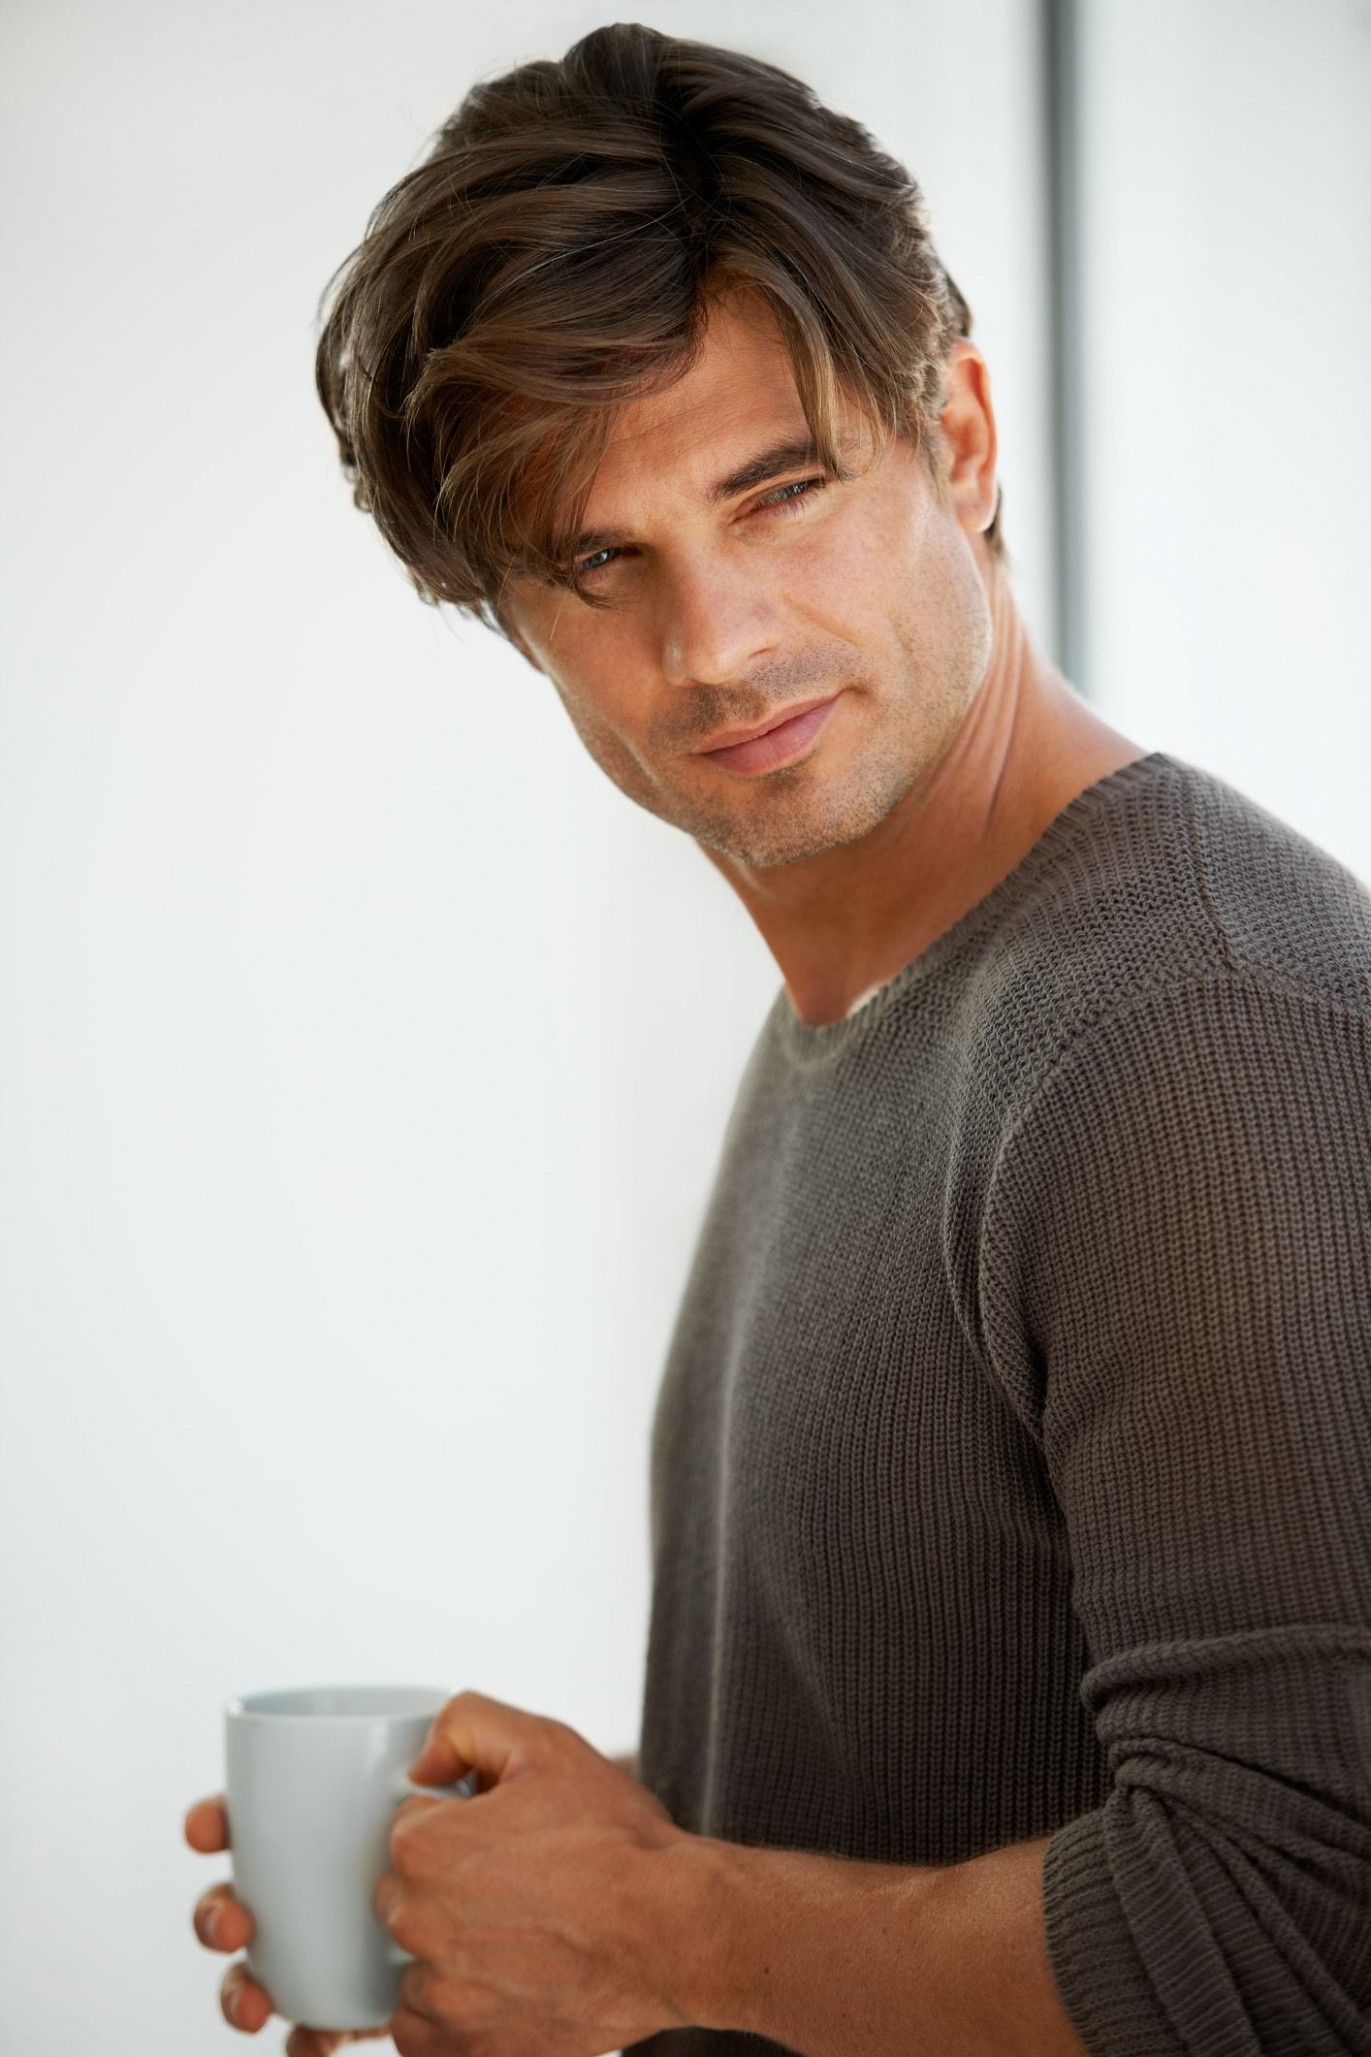 Messy Hairstyles For Men In 10 All Things Hair US Medium Length Messy Hairstyles For Guys